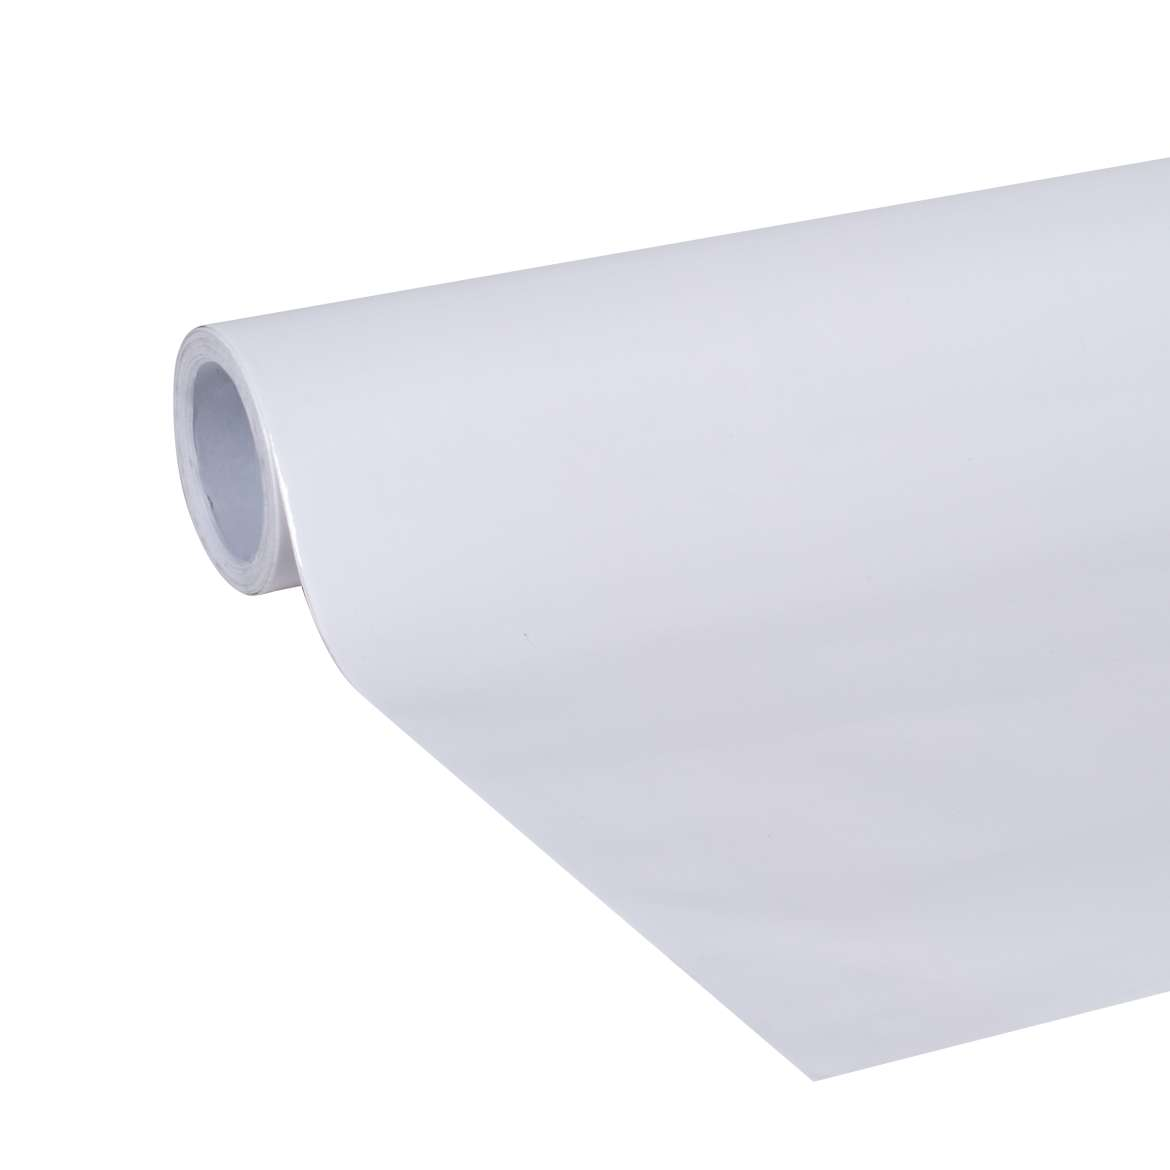 Con Tact Brand Creative Covering Self Adhesive Shelf Liner